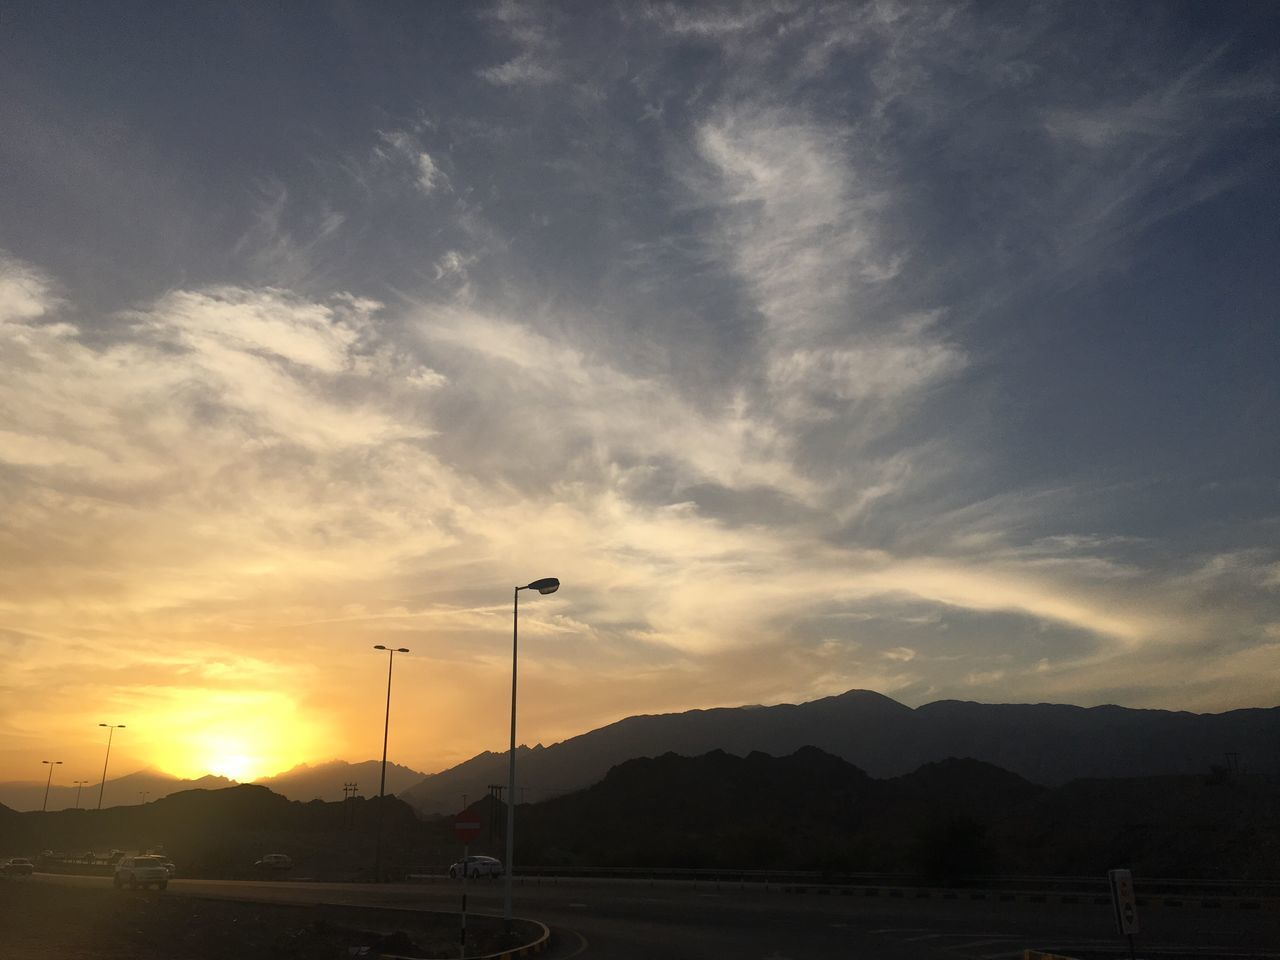 sunset, cloud - sky, car, sky, transportation, silhouette, land vehicle, scenics, nature, sun, street light, beauty in nature, mountain, no people, road, outdoors, day